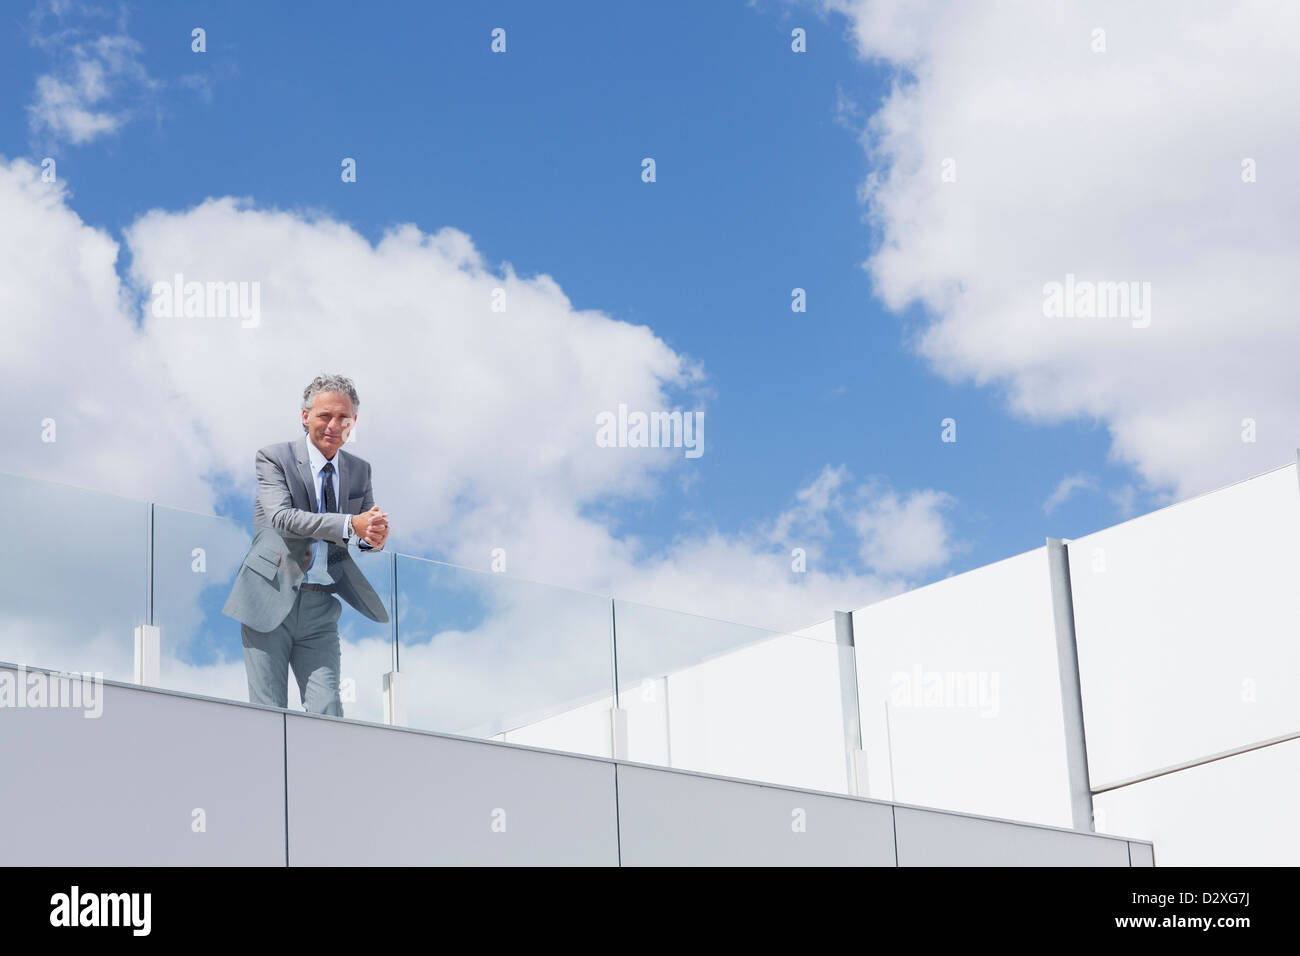 Portrait of confident businessman with hands clasped on balcony - Stock Image